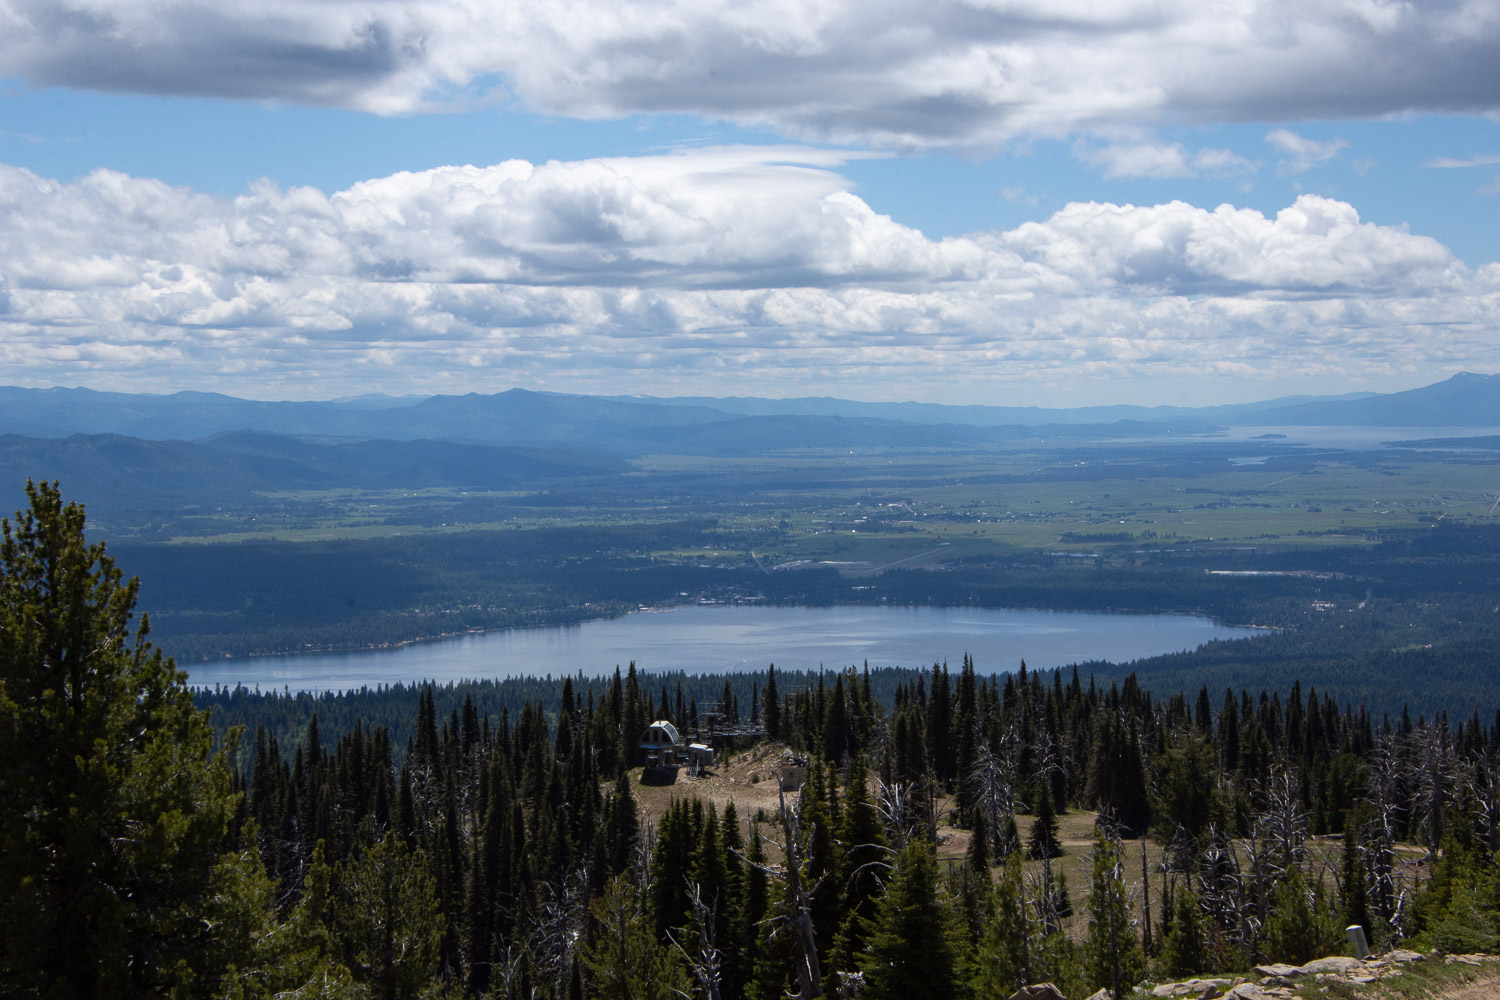 Payette Lake and McCall Idaho from the Brundage Mountain lookout.